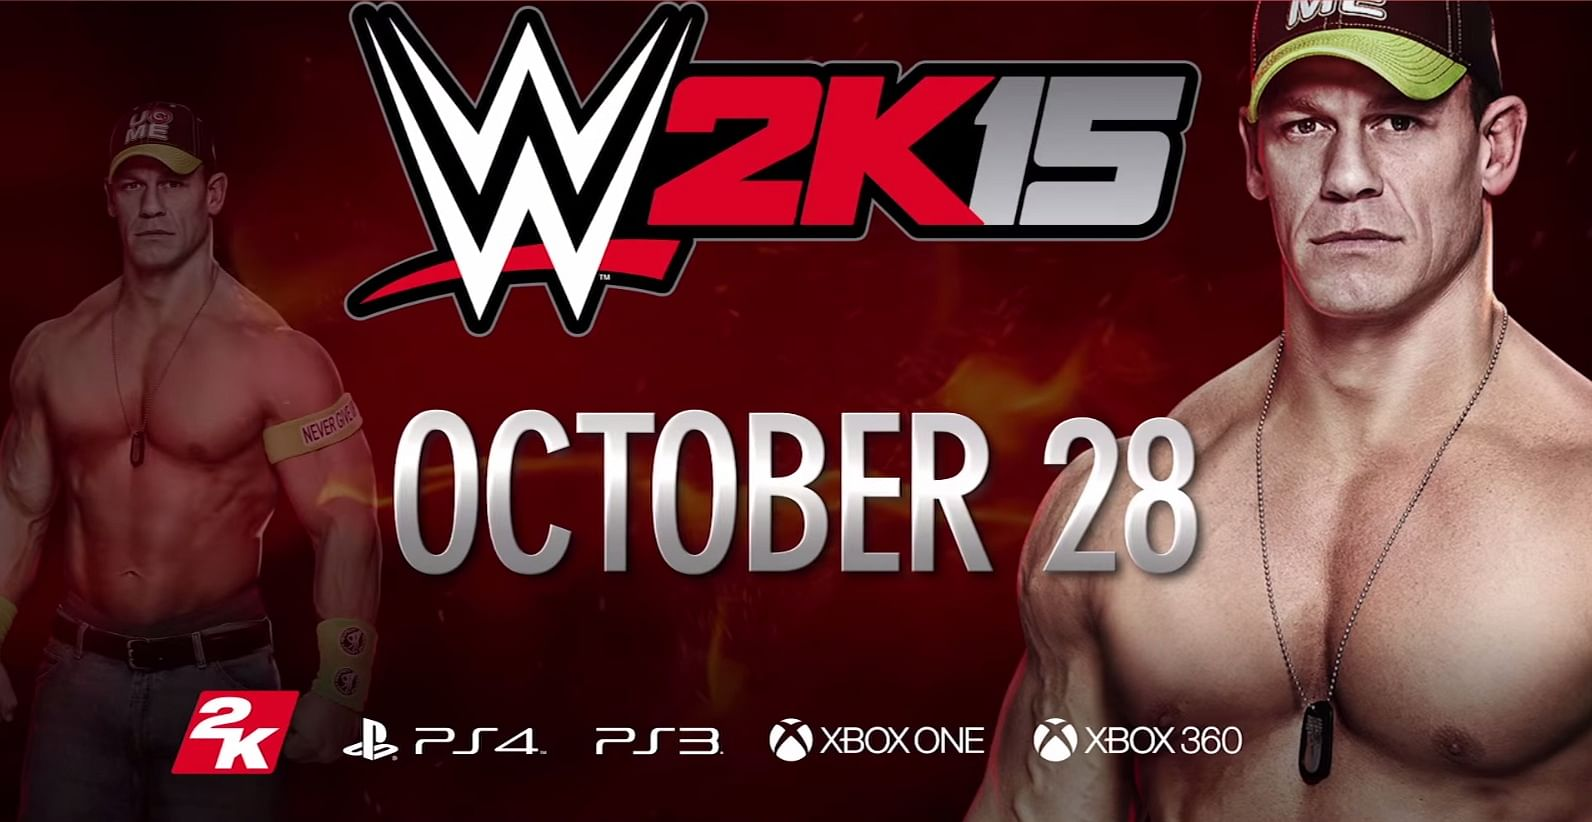 WWE 2K15: Entrance videos of Randy Orton and Goldust released